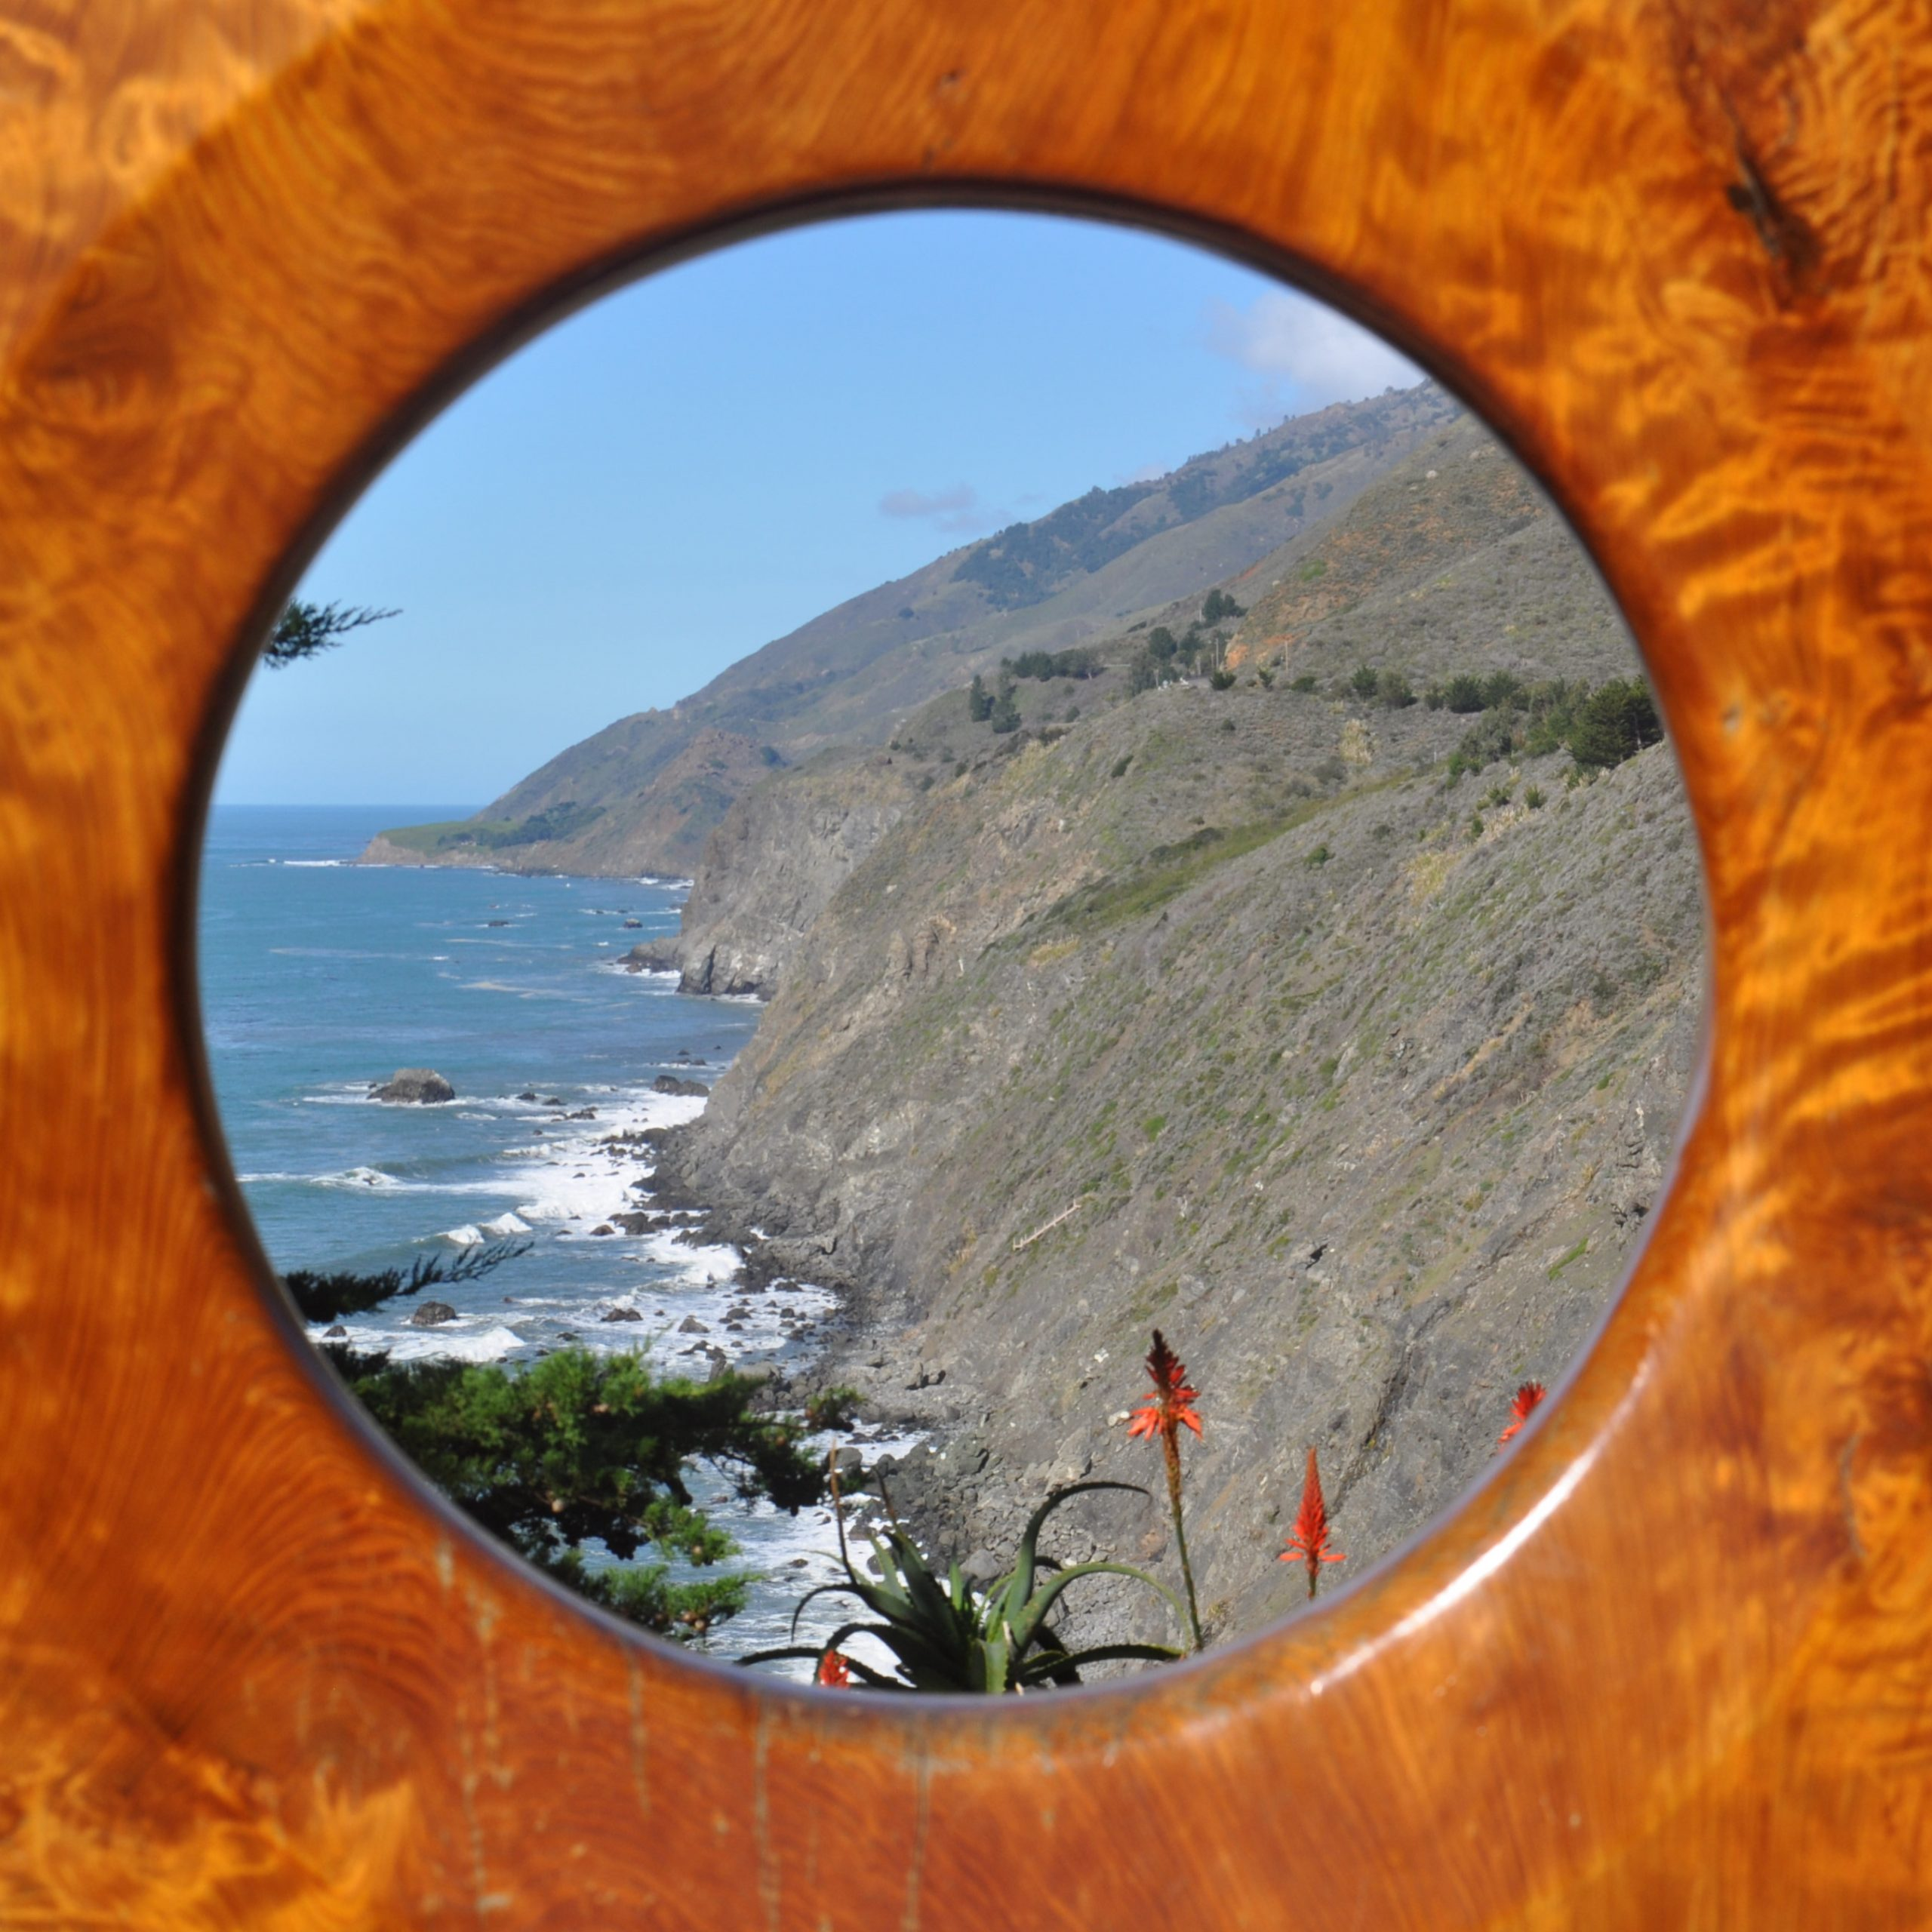 """A view through the """"Portal on the Big Sur"""" at Ragged Point Inn, looking north along the coastline."""